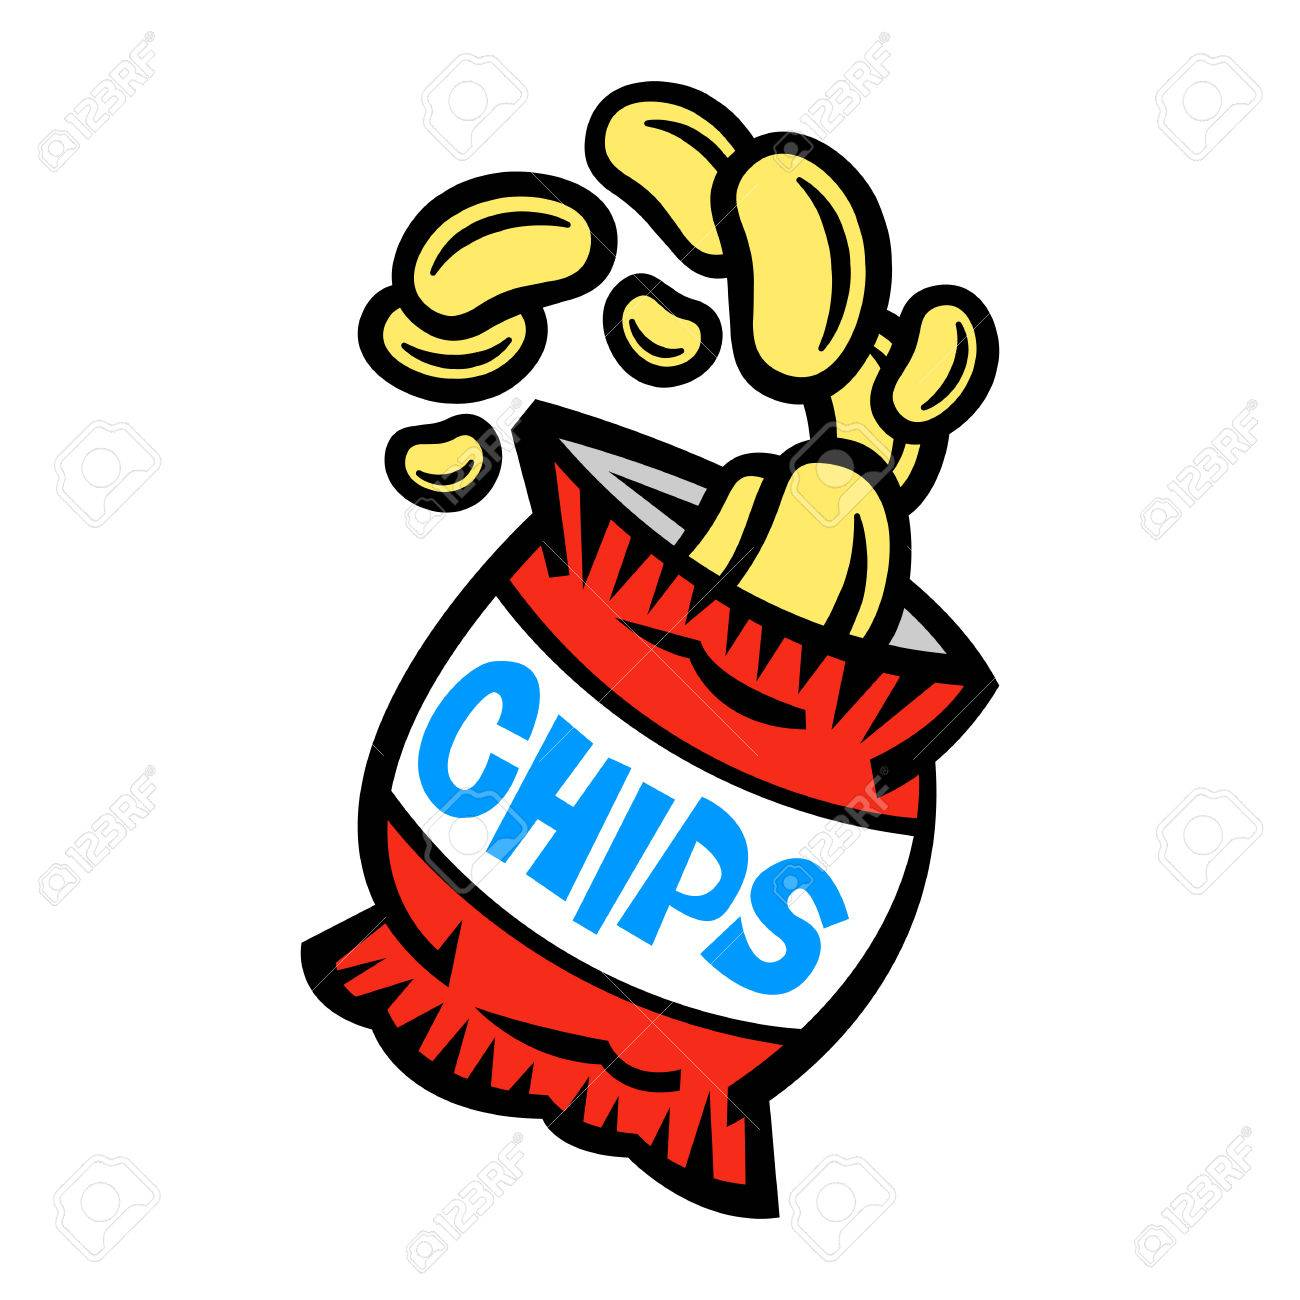 1358 Chips free clipart.